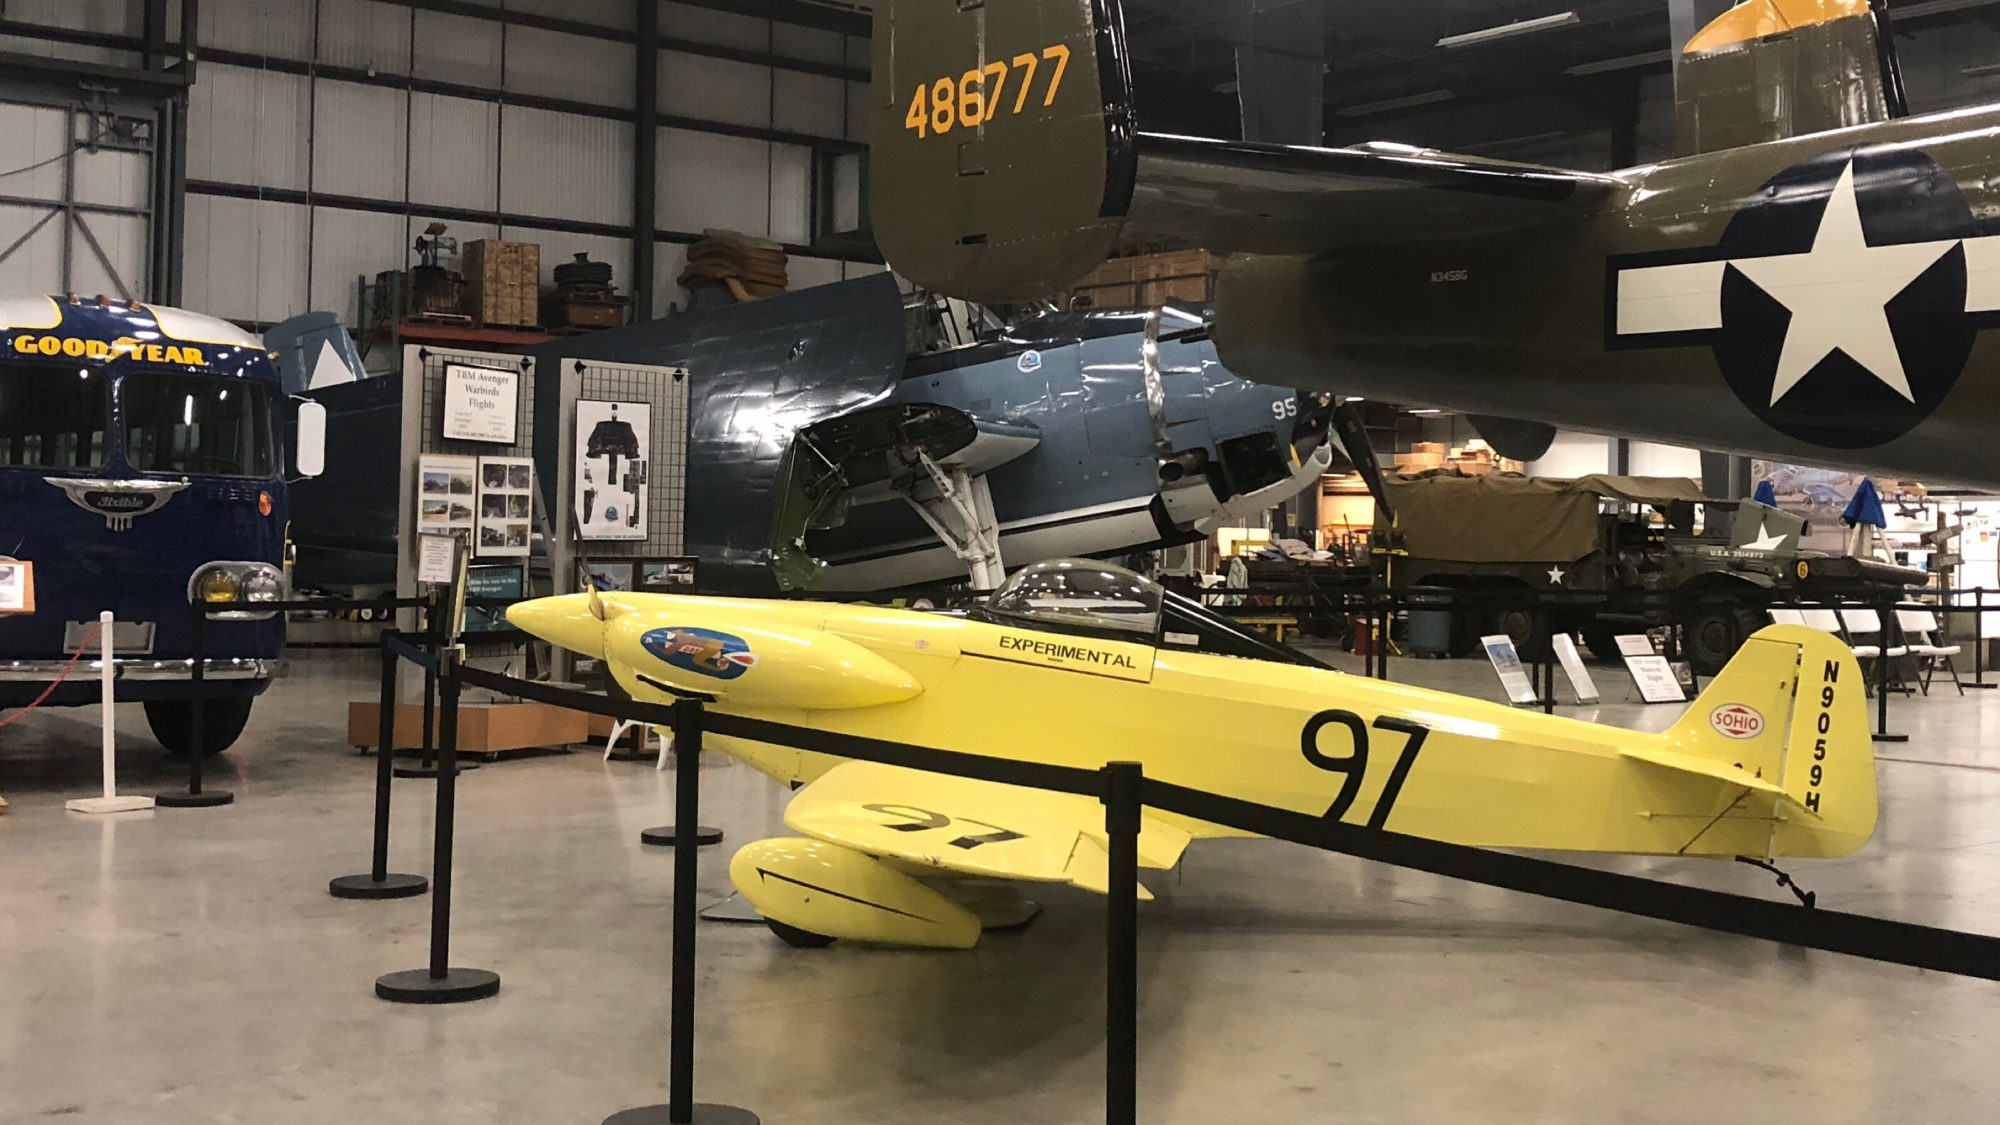 Touring Liberty Aviation Museum